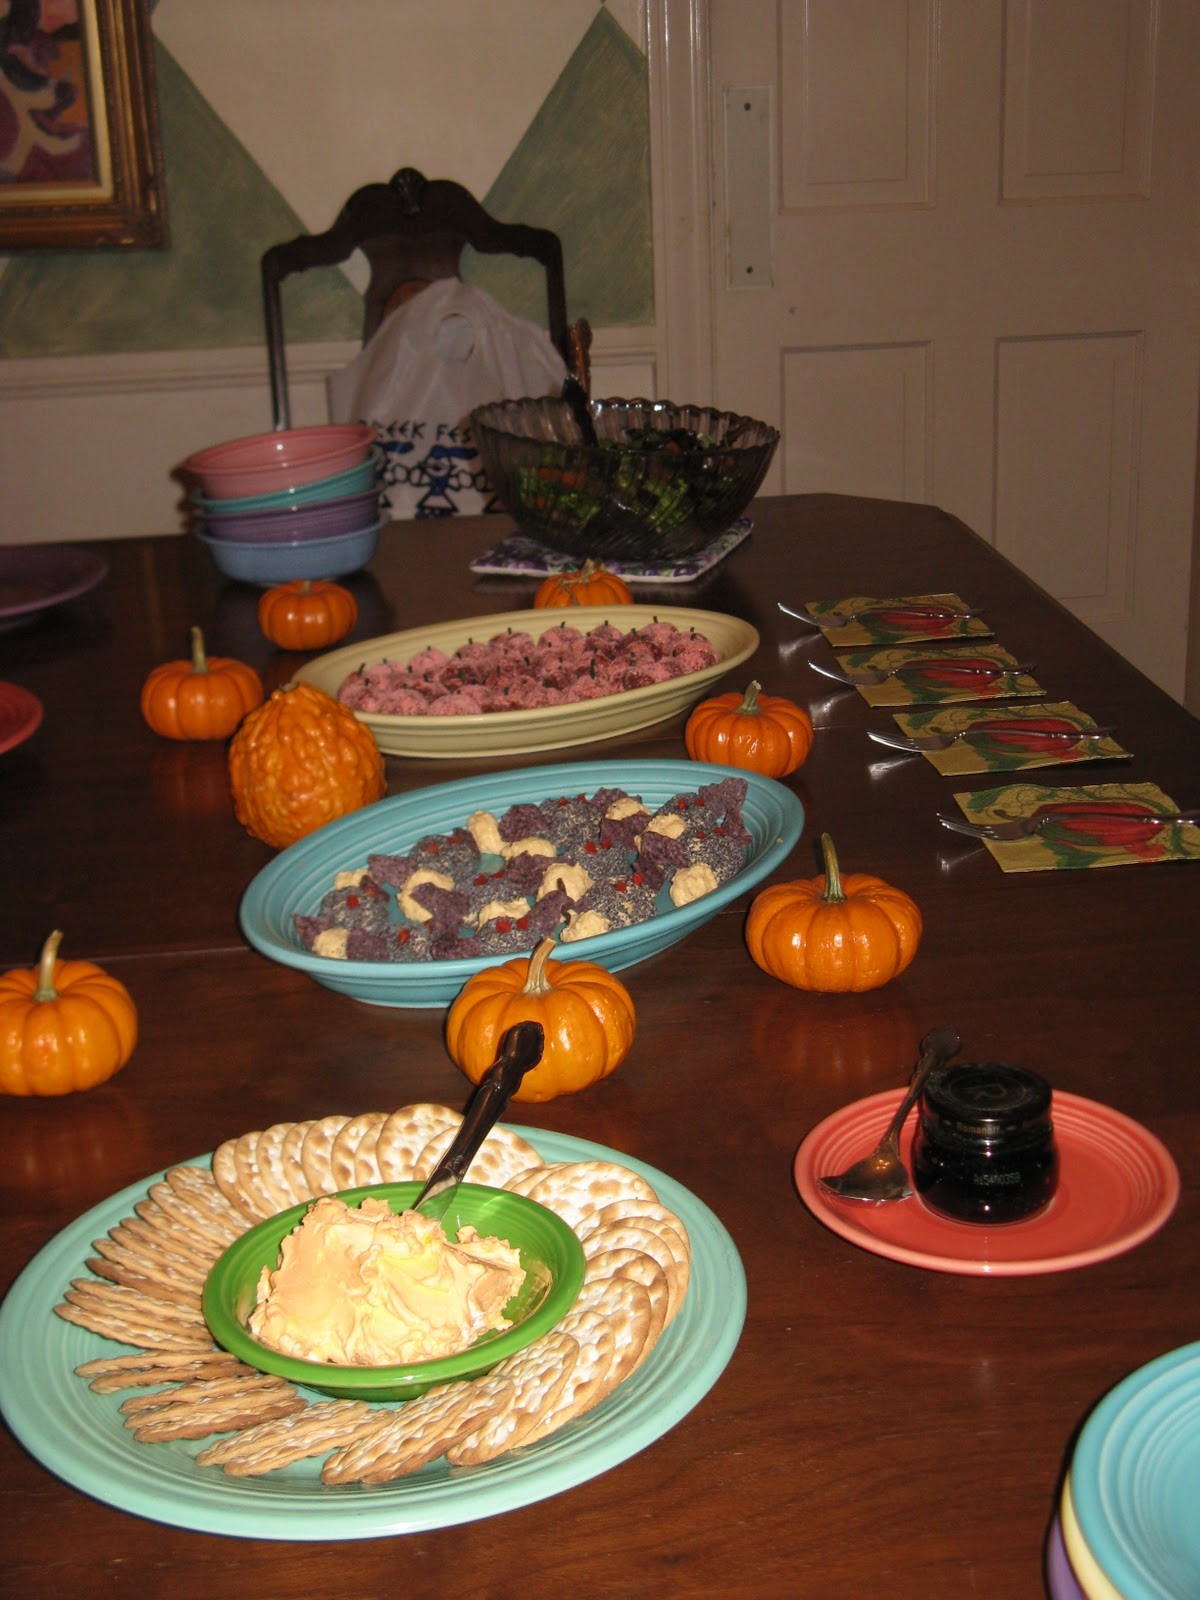 Halloween Themed Dinner  The Expressive Figures Janet Bodin October 2010